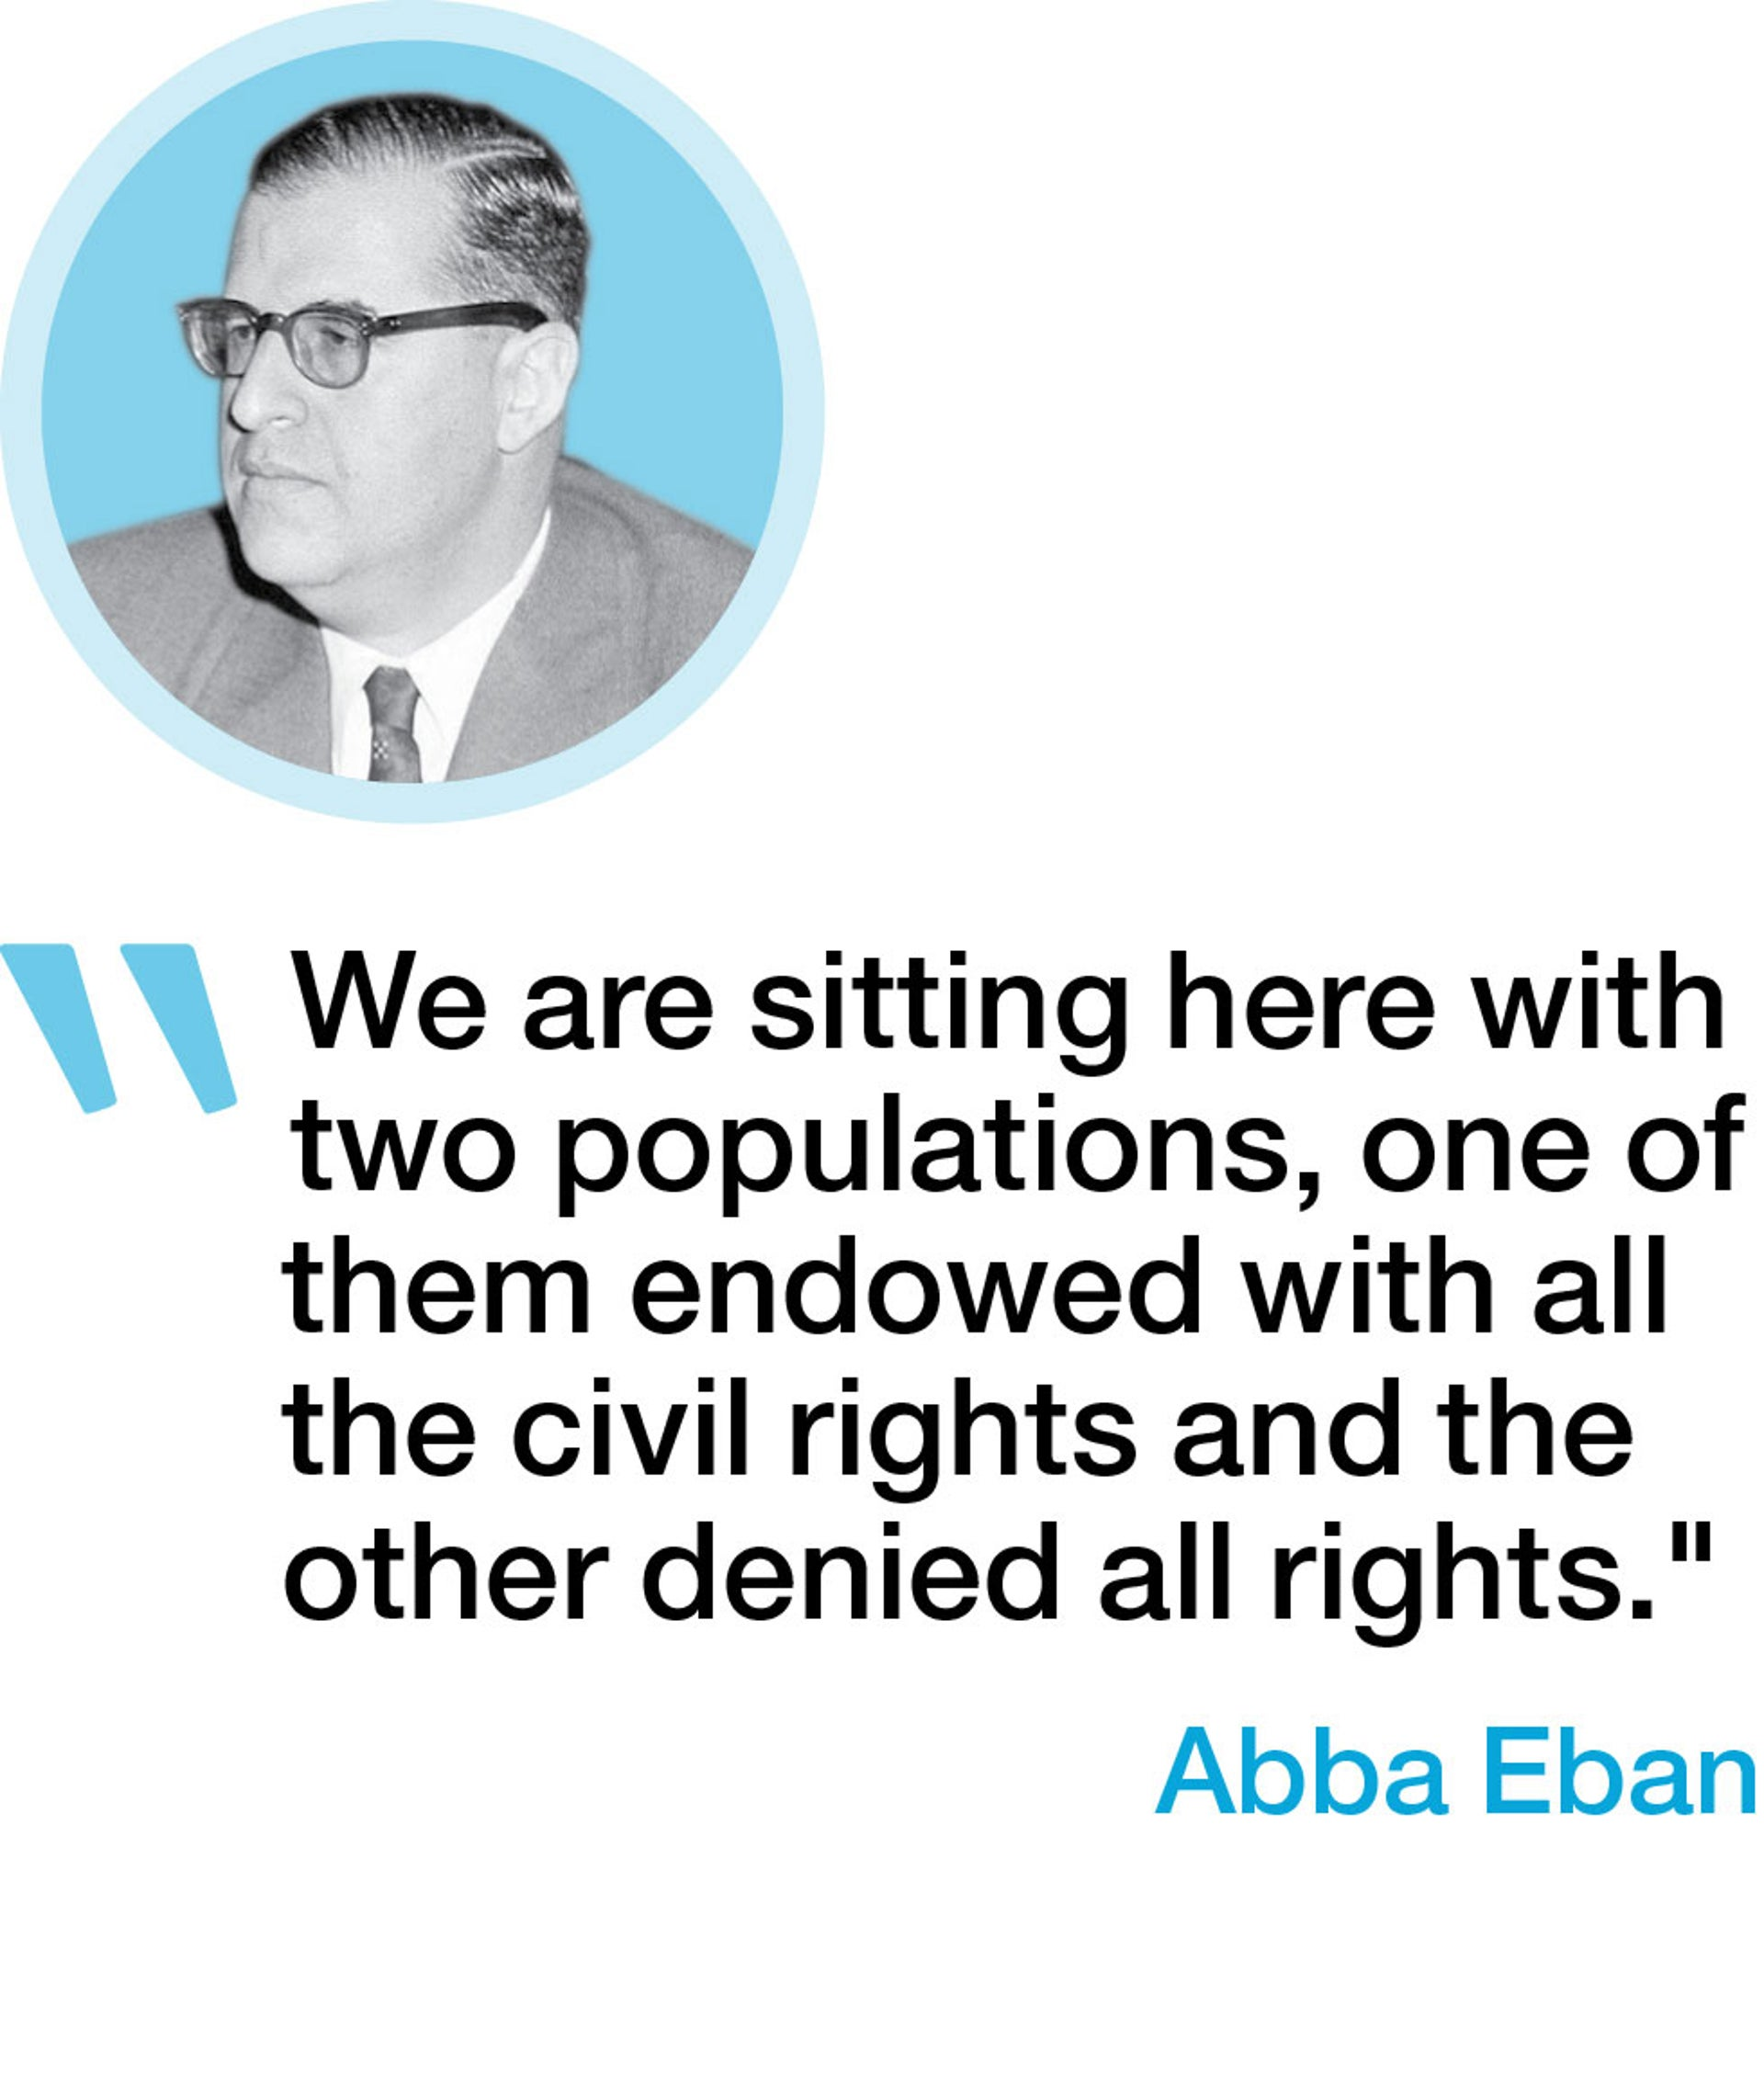 """We are sitting here with two populations, one of them endowed with all the civil rights and the other denied all rights."" - Abba Eban"